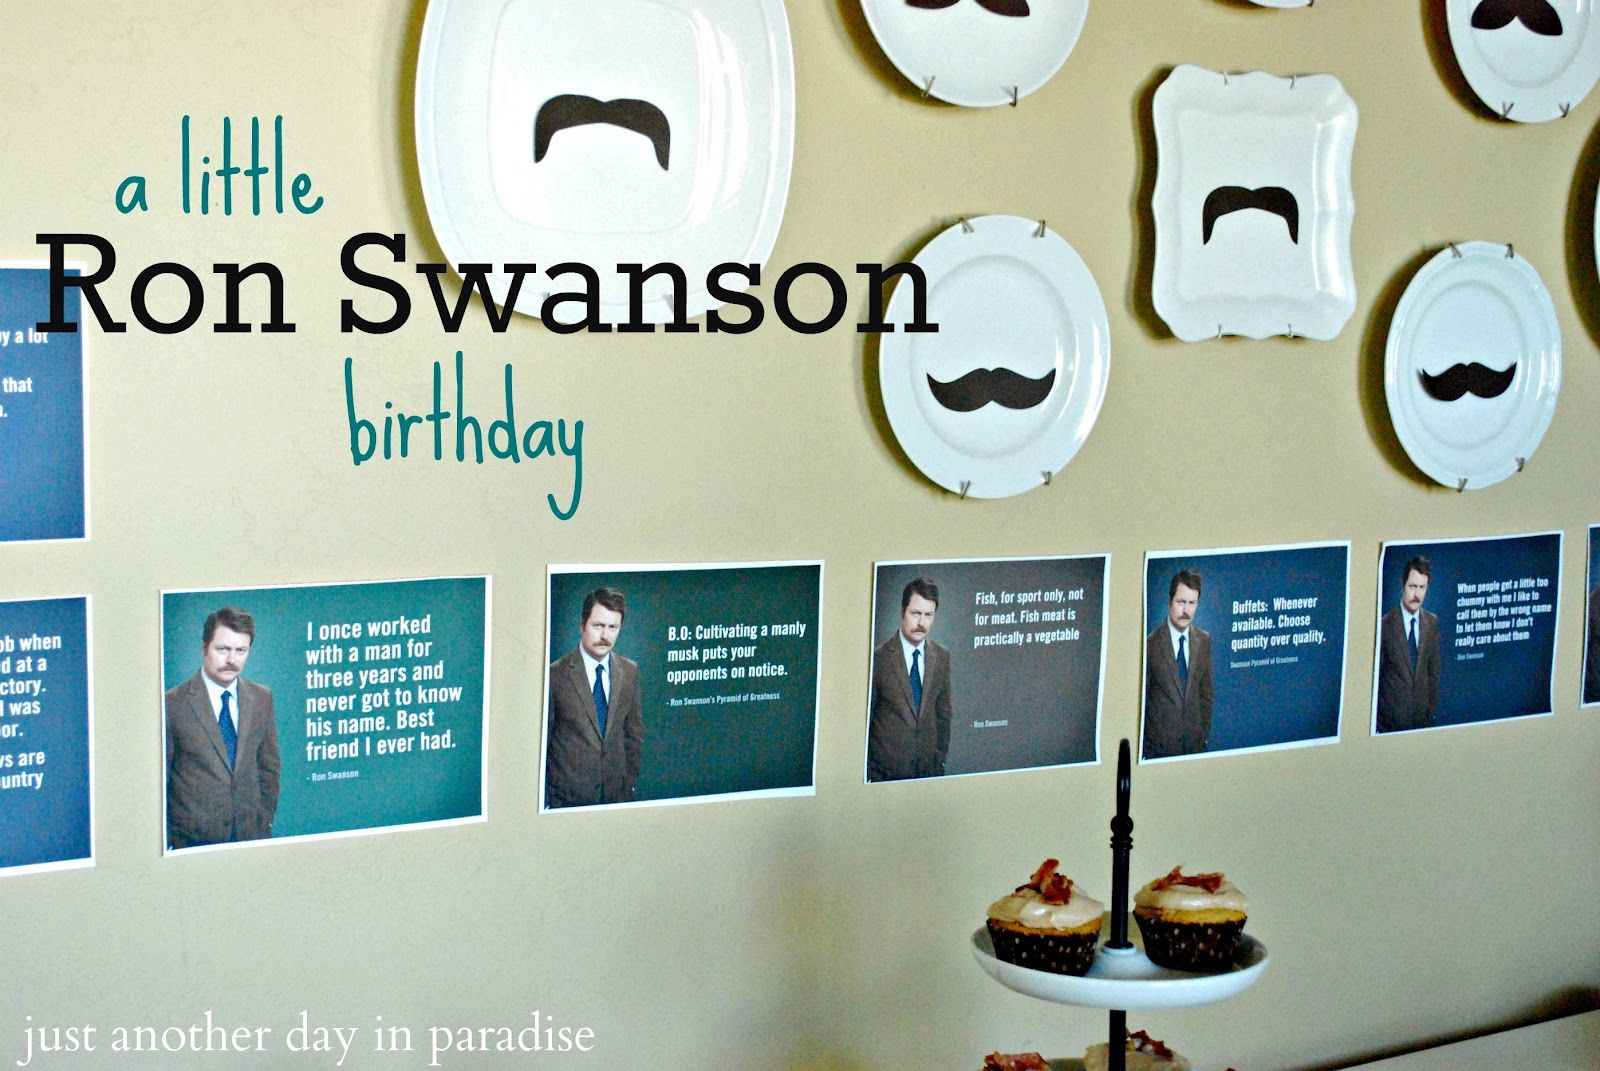 A Little Ron Swanson Birthday Party